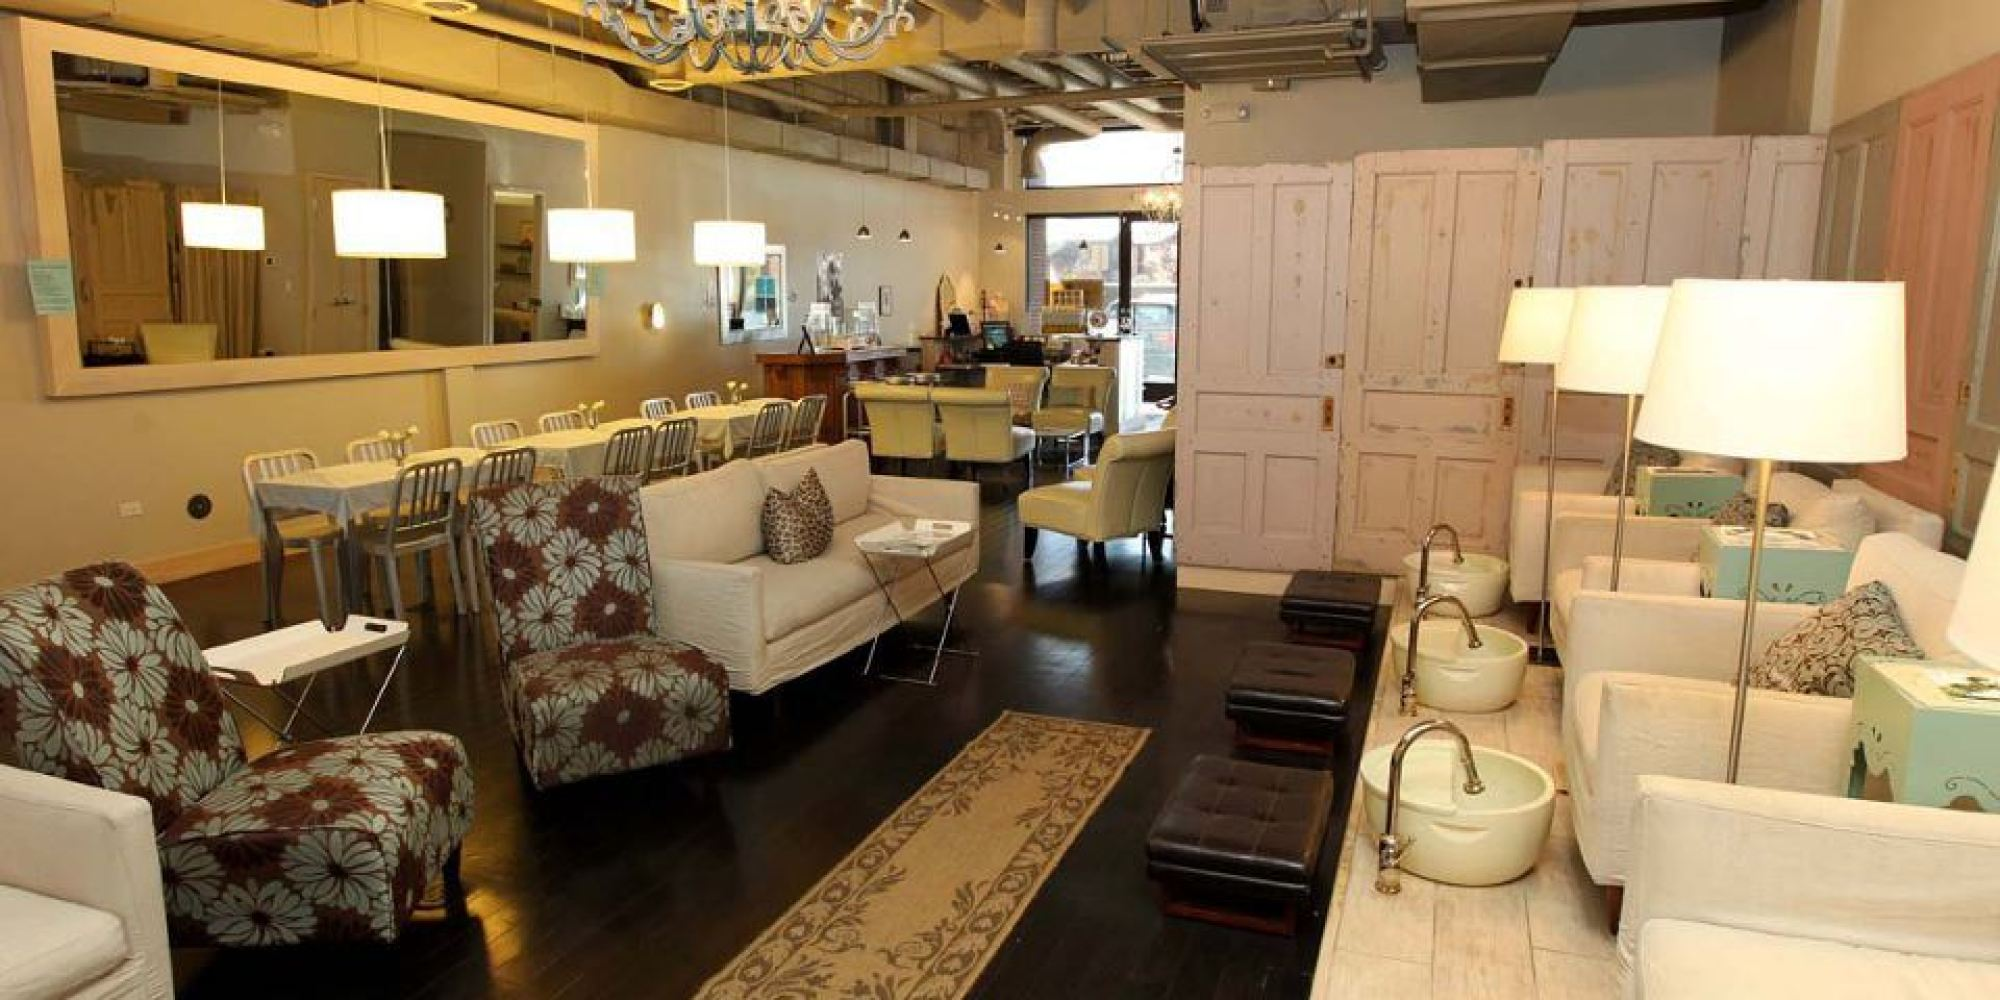 Best Spa And Beauty Spots In And Around Denver For Post-Shopping ...